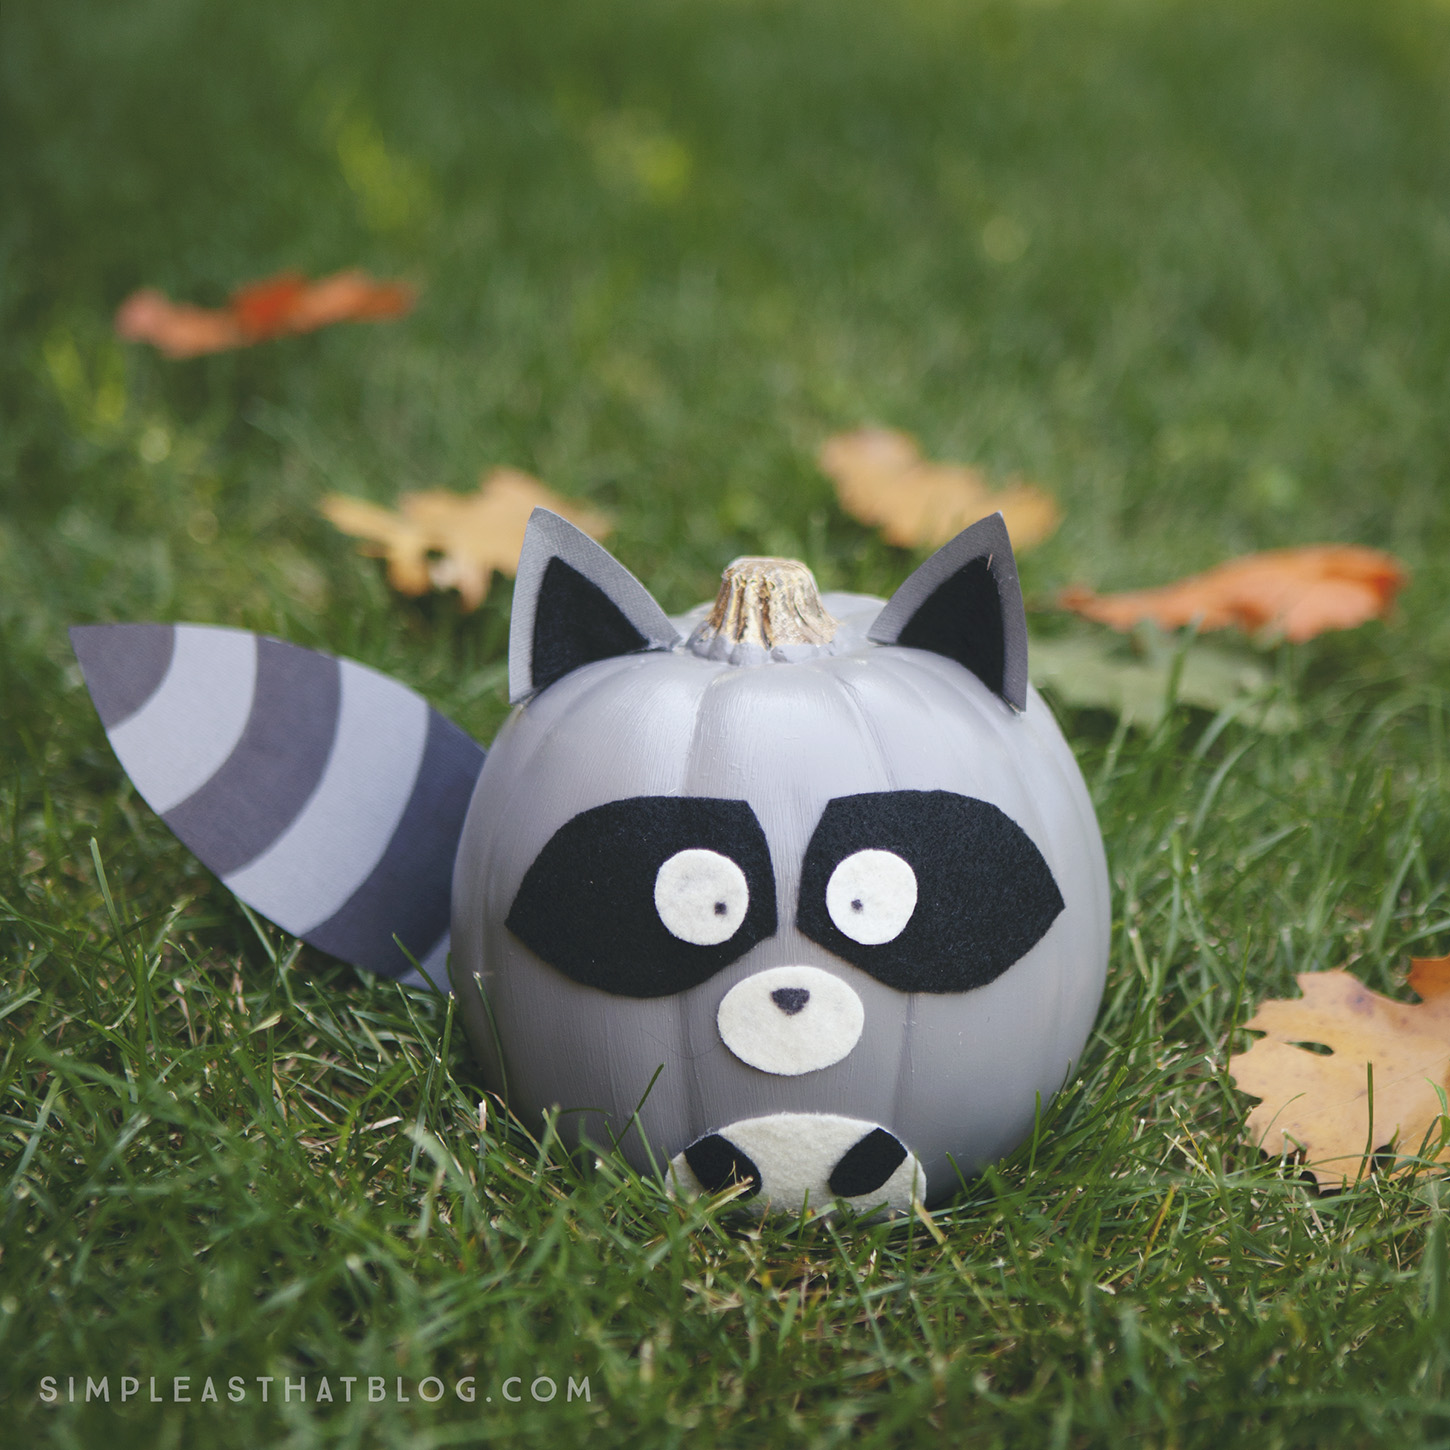 Adorable no-carve raccoon pumpkin.